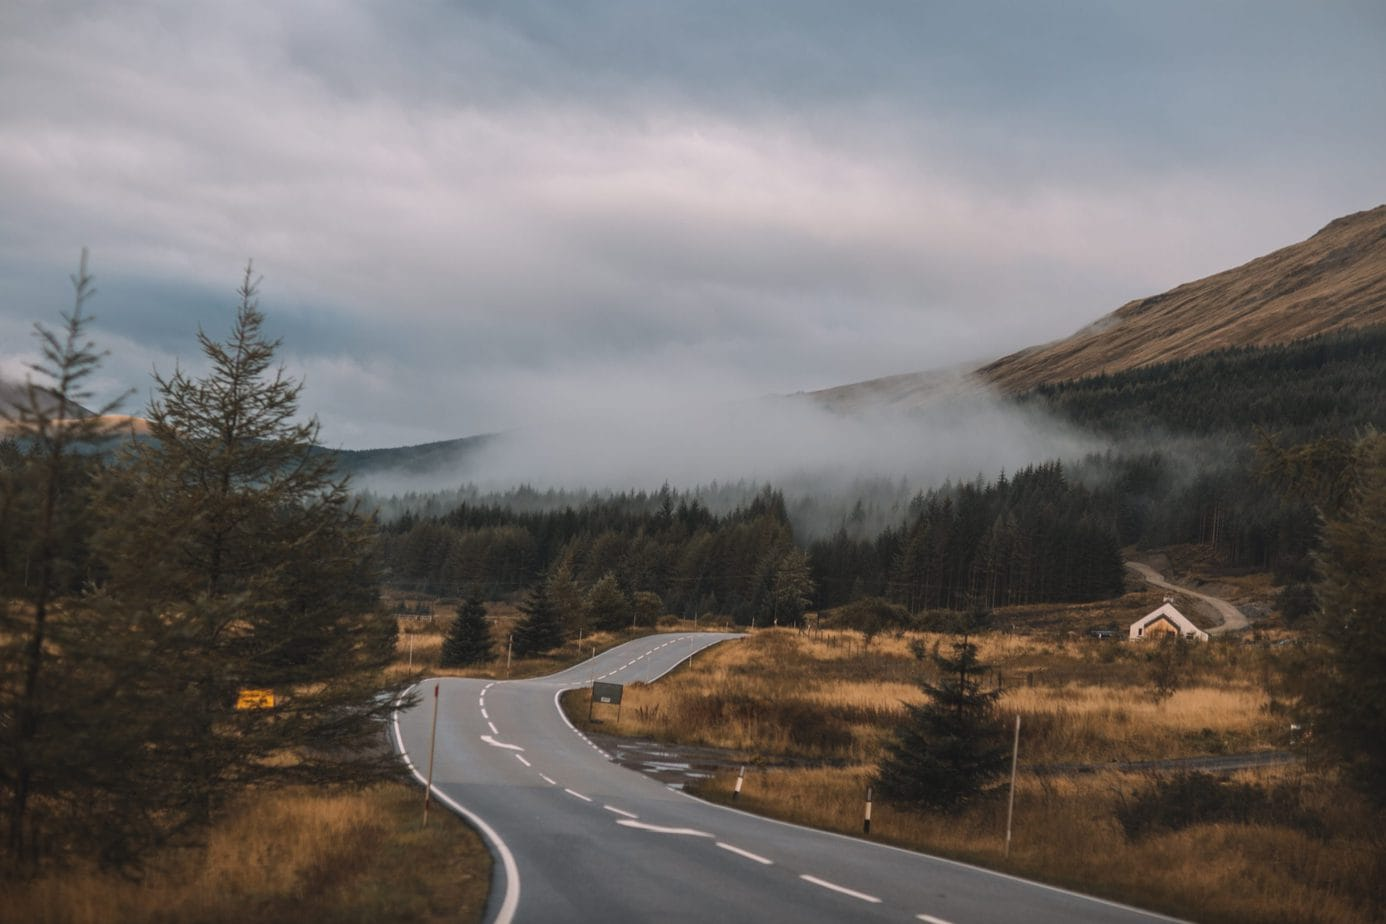 Pretty road with forest on the way to a Scotland elopement